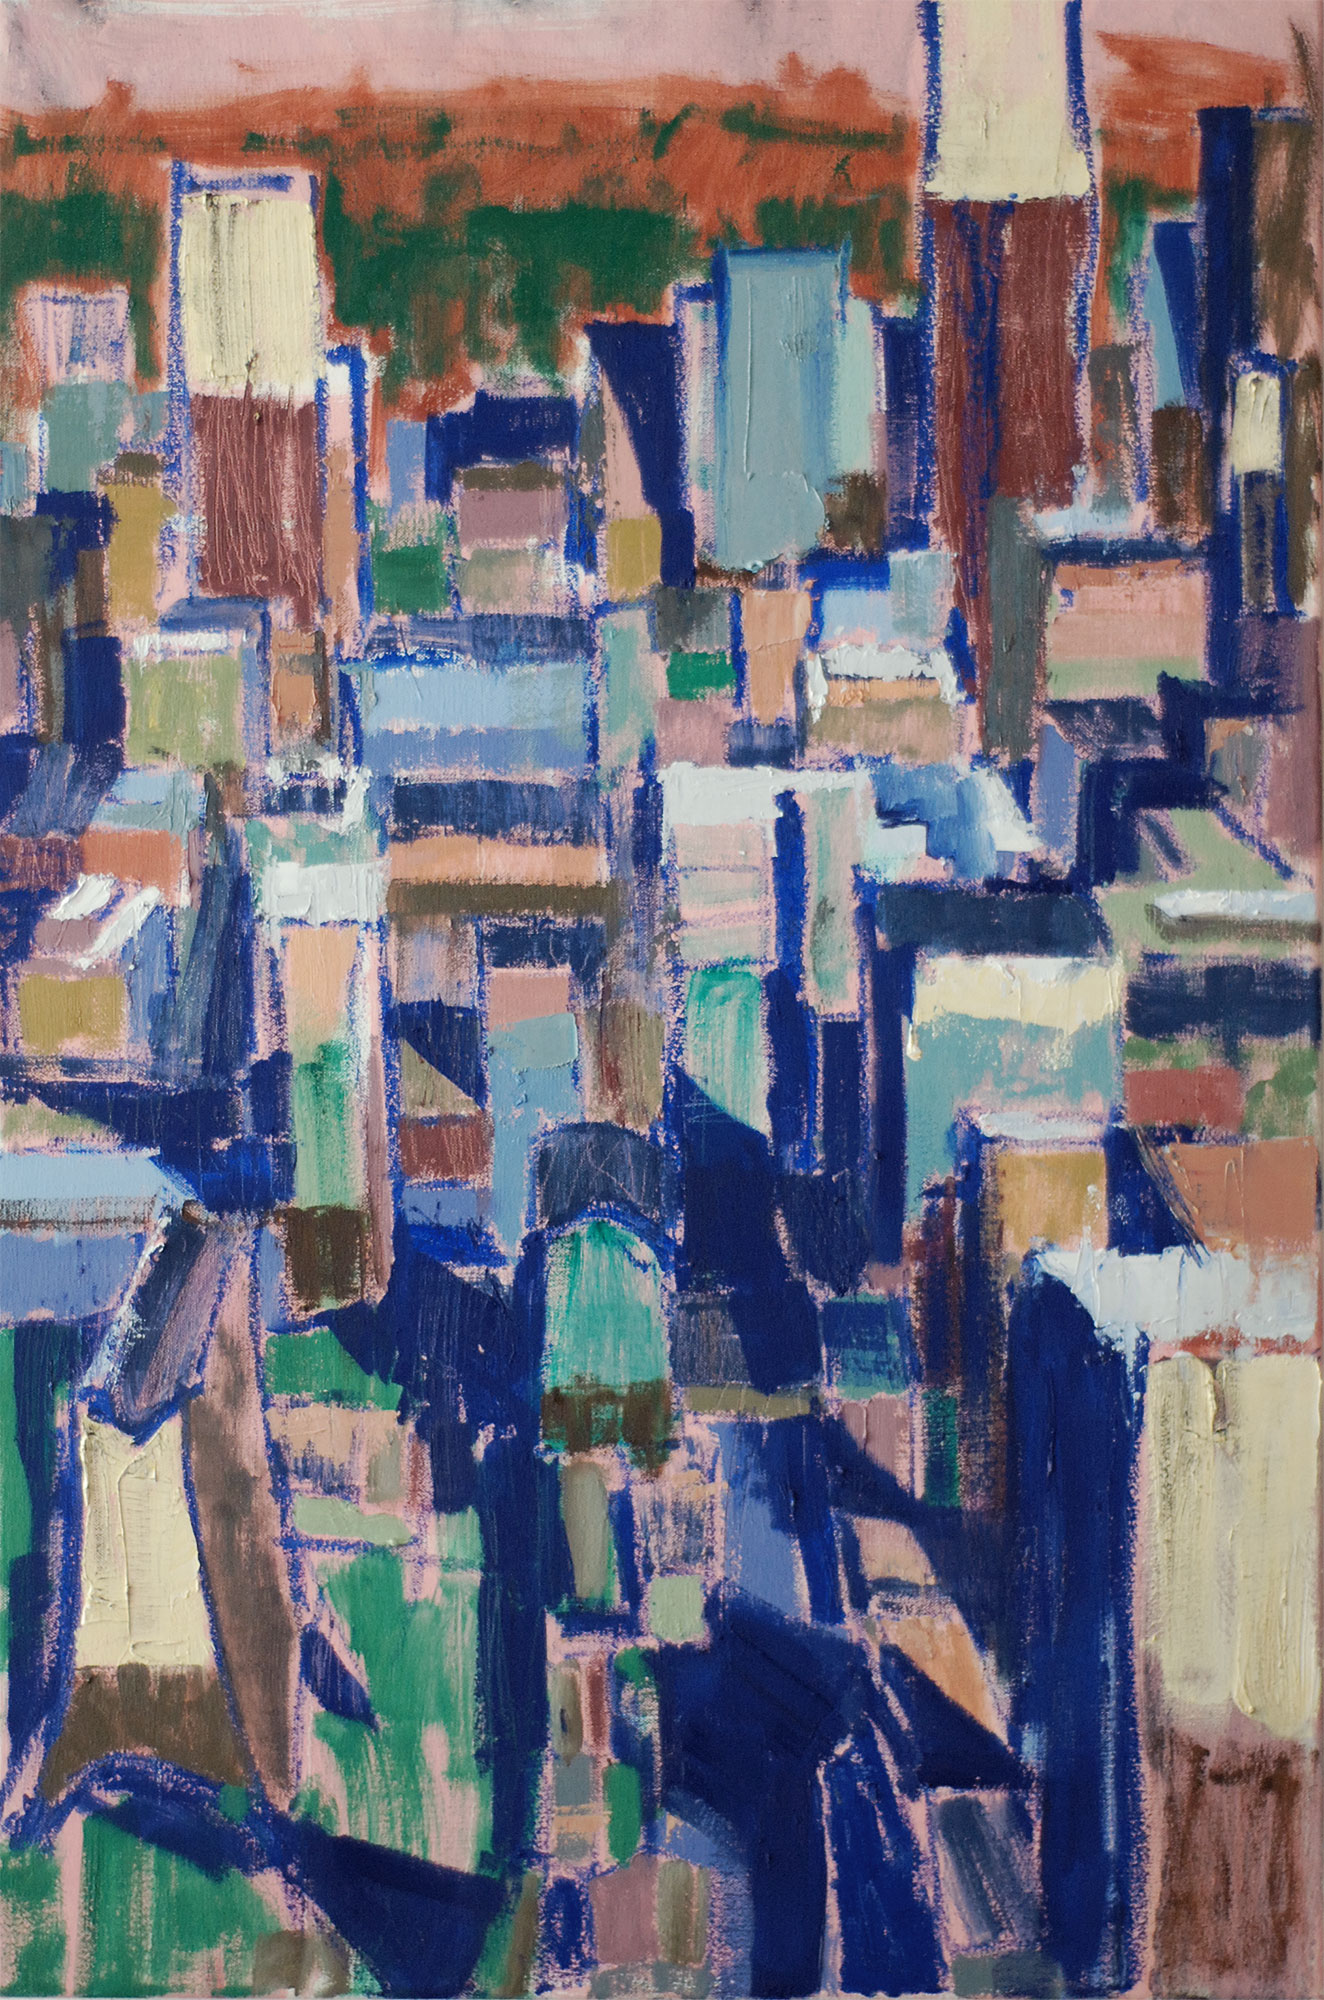 Yorkville, 2019. 36 x 24 inches. Oil on canvas. (Framed, Wired for hanging) $1400